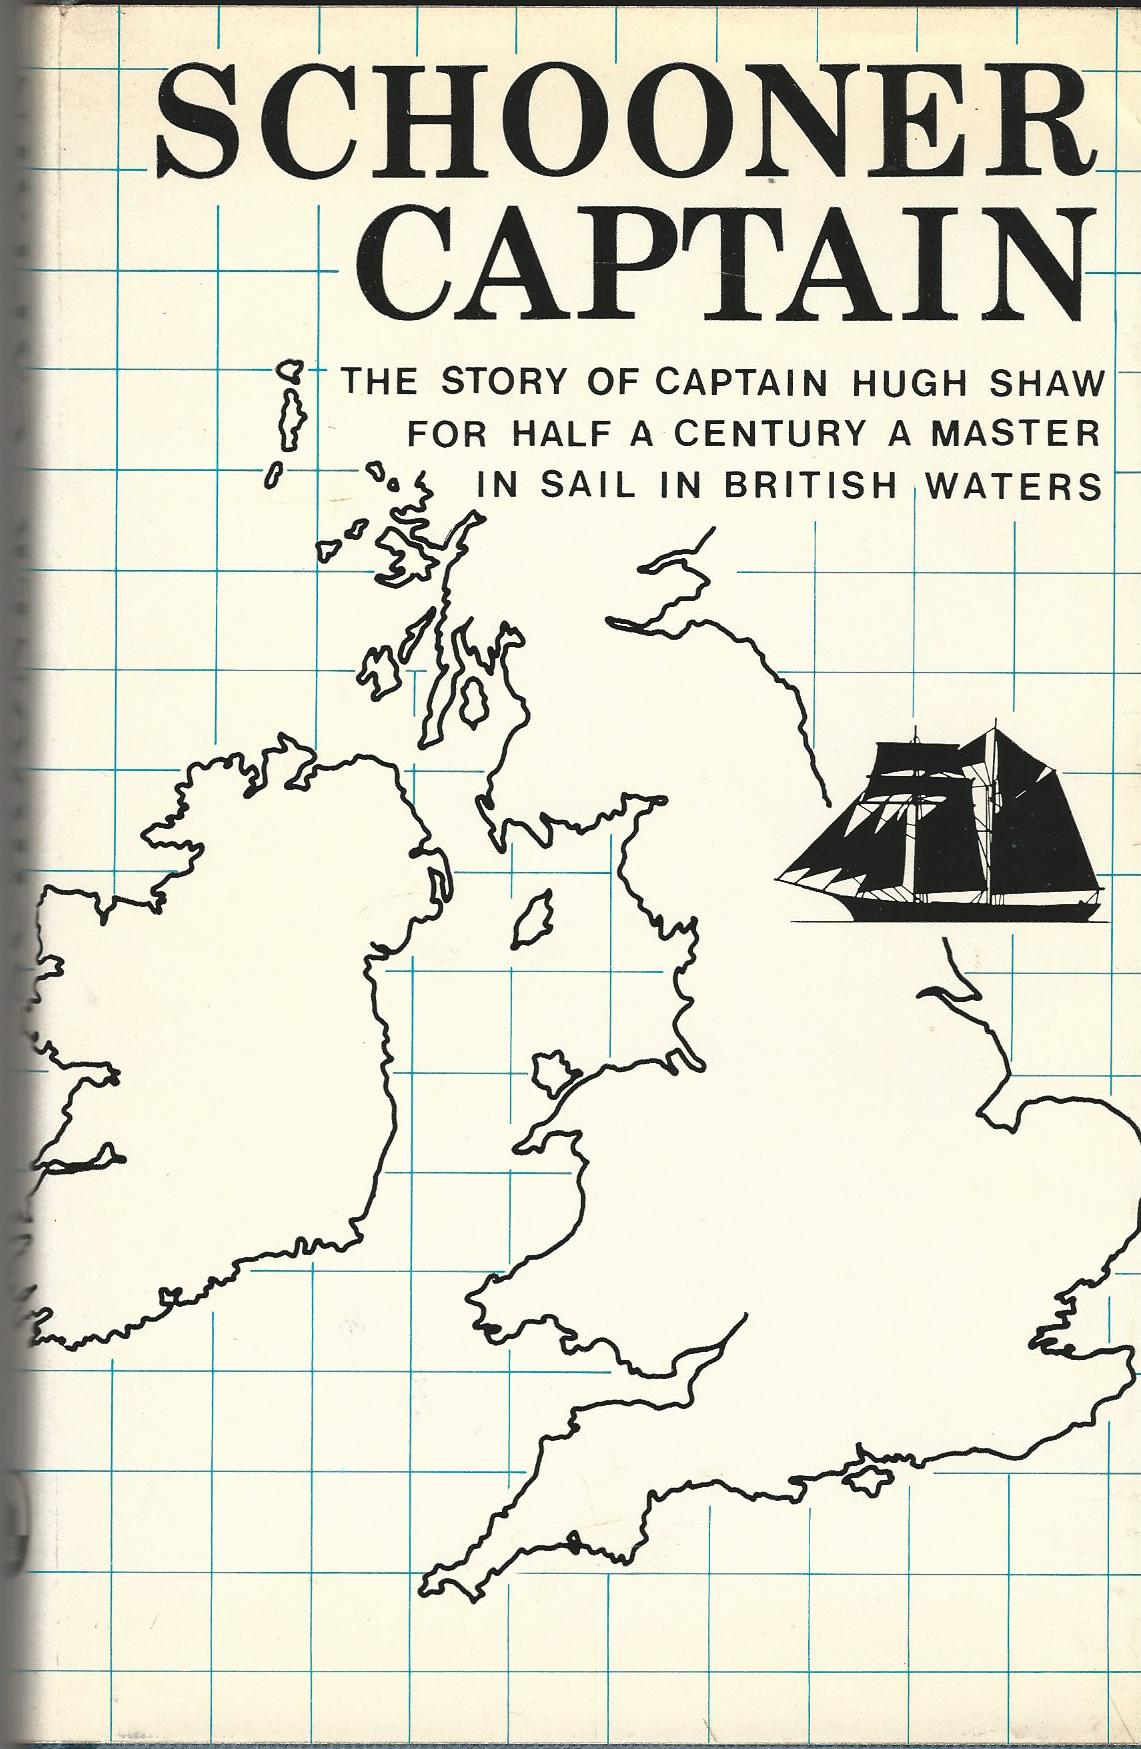 Image for Schooner Captain: The Story of Captain Hugh Shaw for Half a Century, A Master in Sail in British Waters.